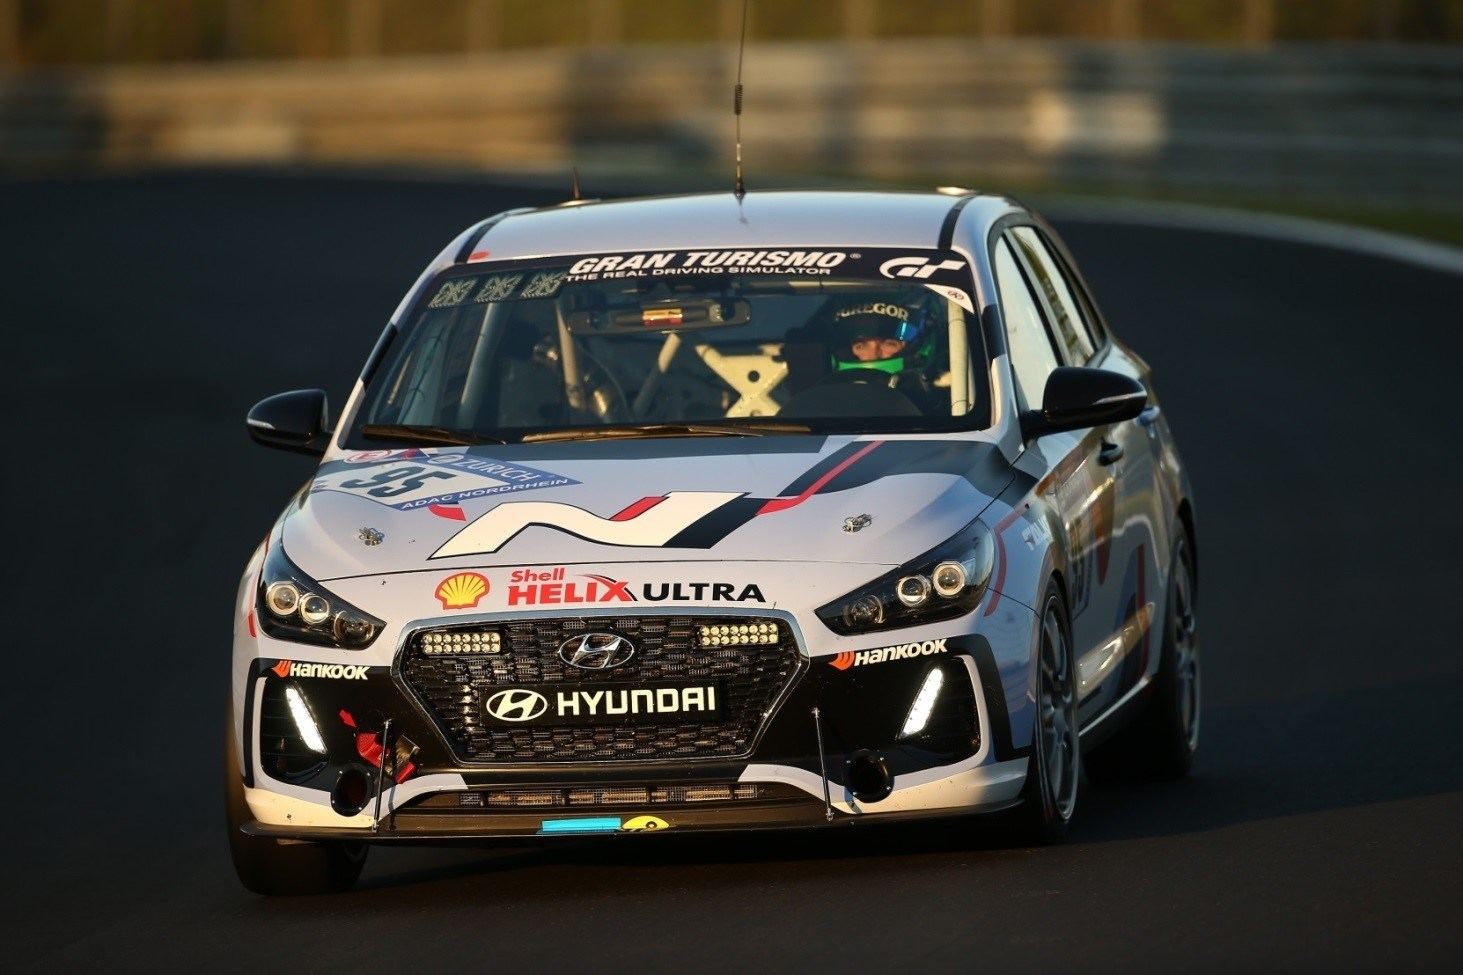 Hyundai to Debut Competition-Proven I30 N Racecar from 24-Hours of Nurburgring during 2017 SEMA Show